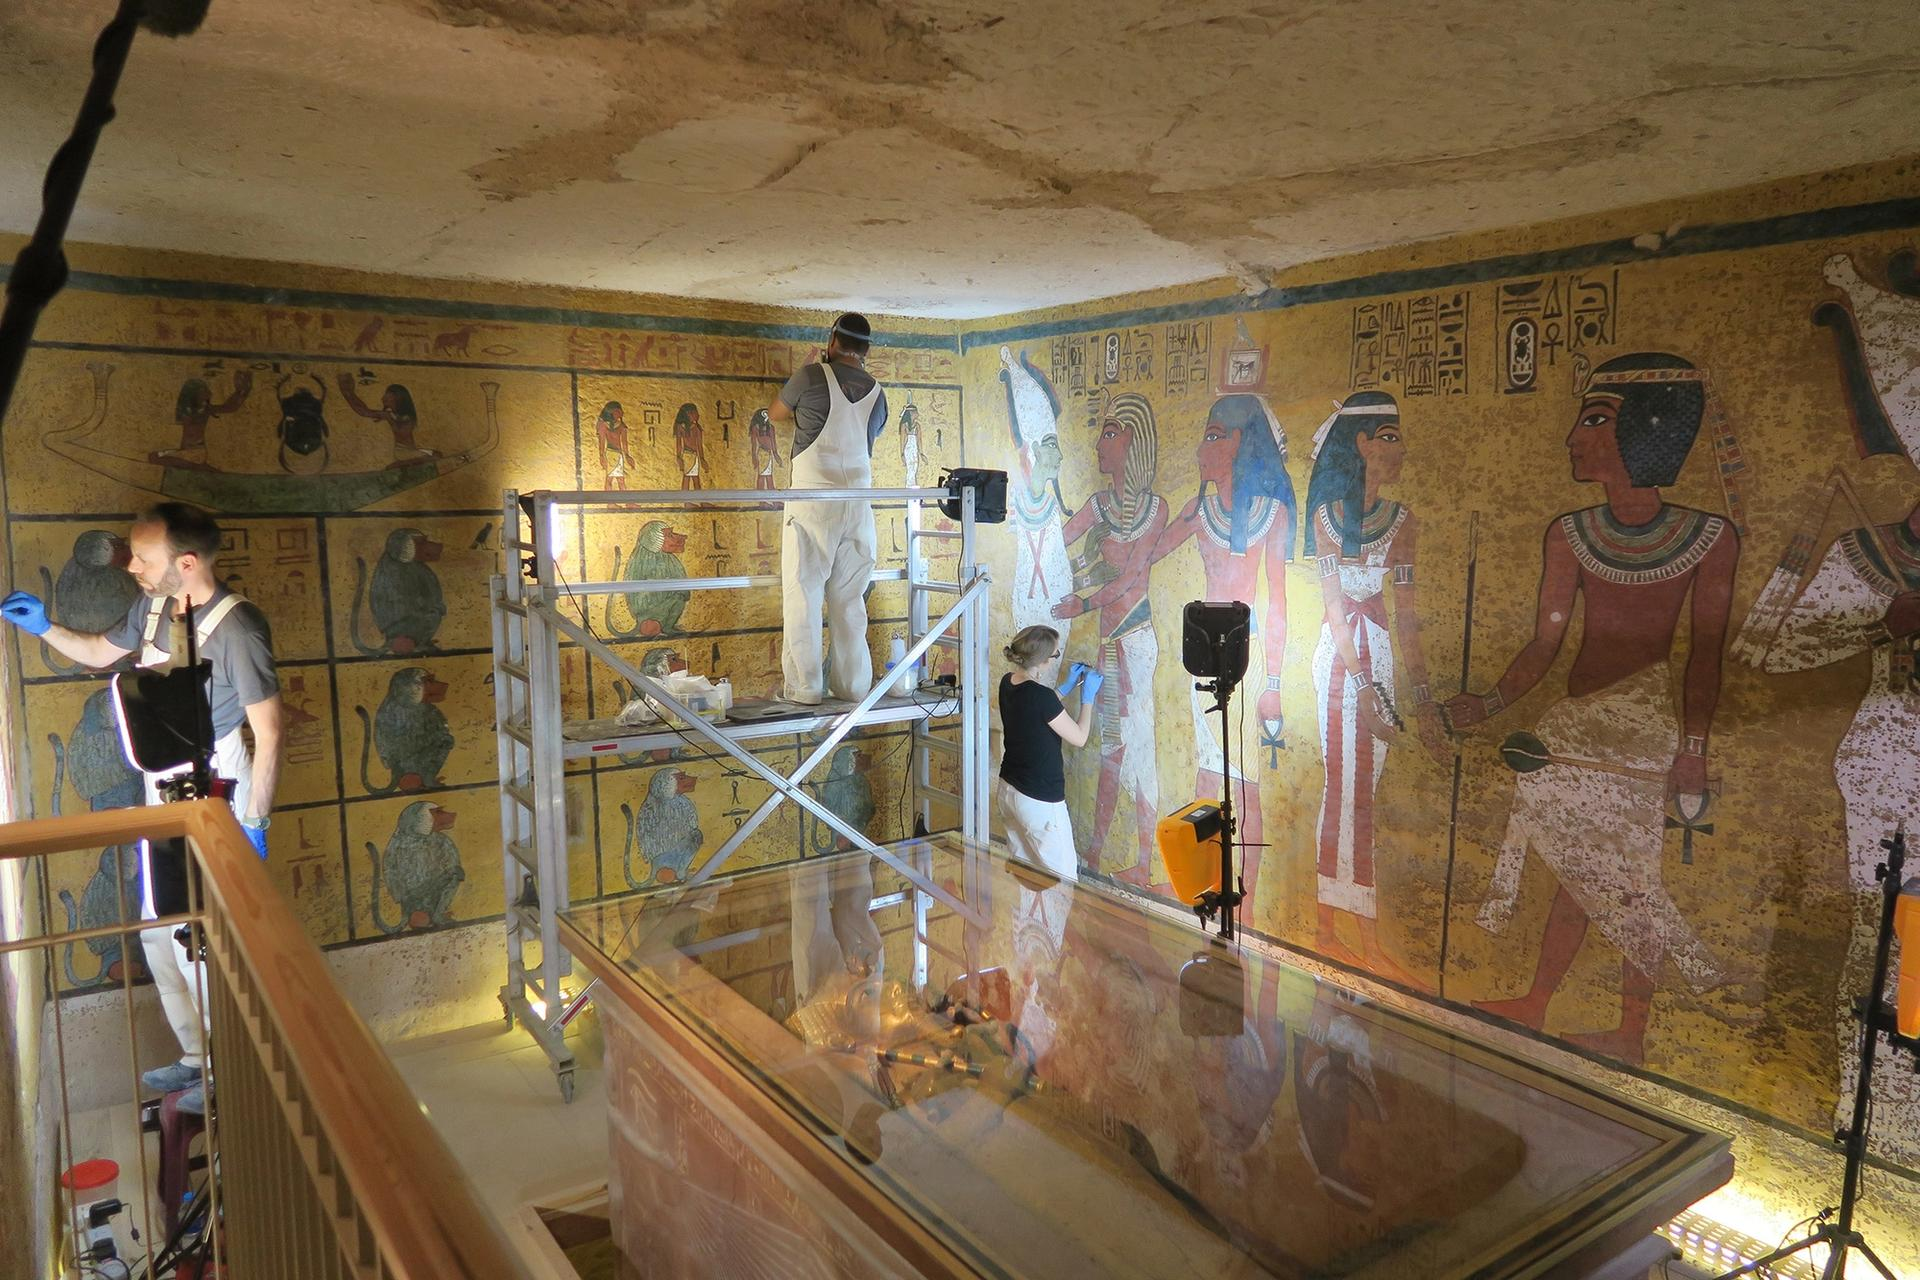 Conservation work being conducted in the burial chamber of the Tomb of King Tutankhamen © J. Paul Getty Trust